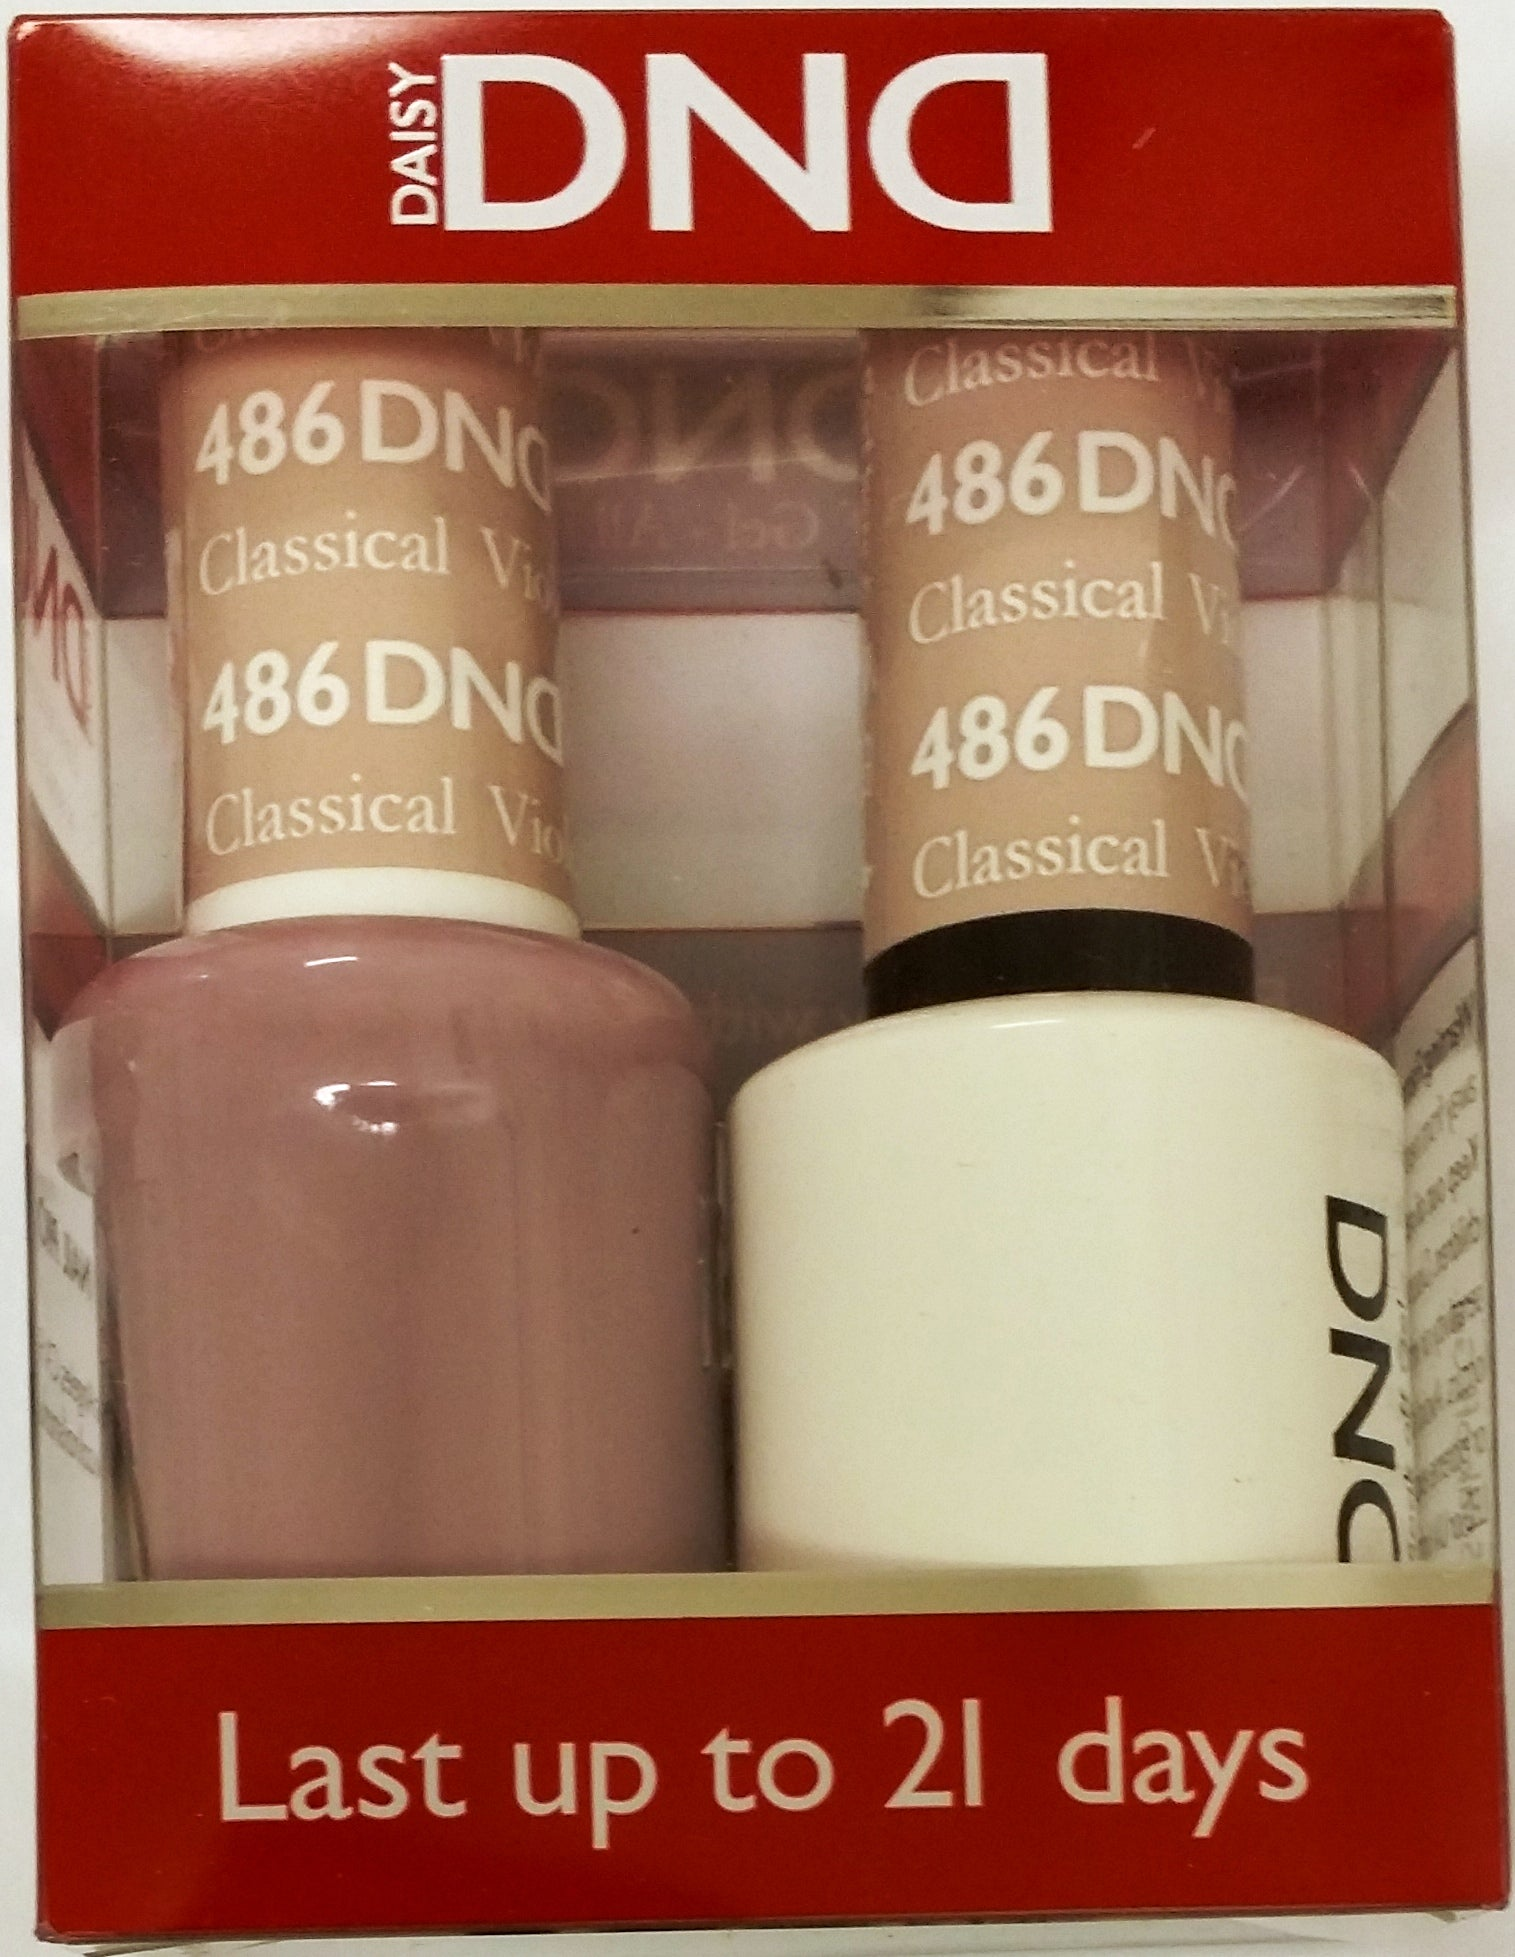 Dnd Duo Gel Matching Nail Polish Set 461 521 Choose Your Colors Four Seasons Beauty